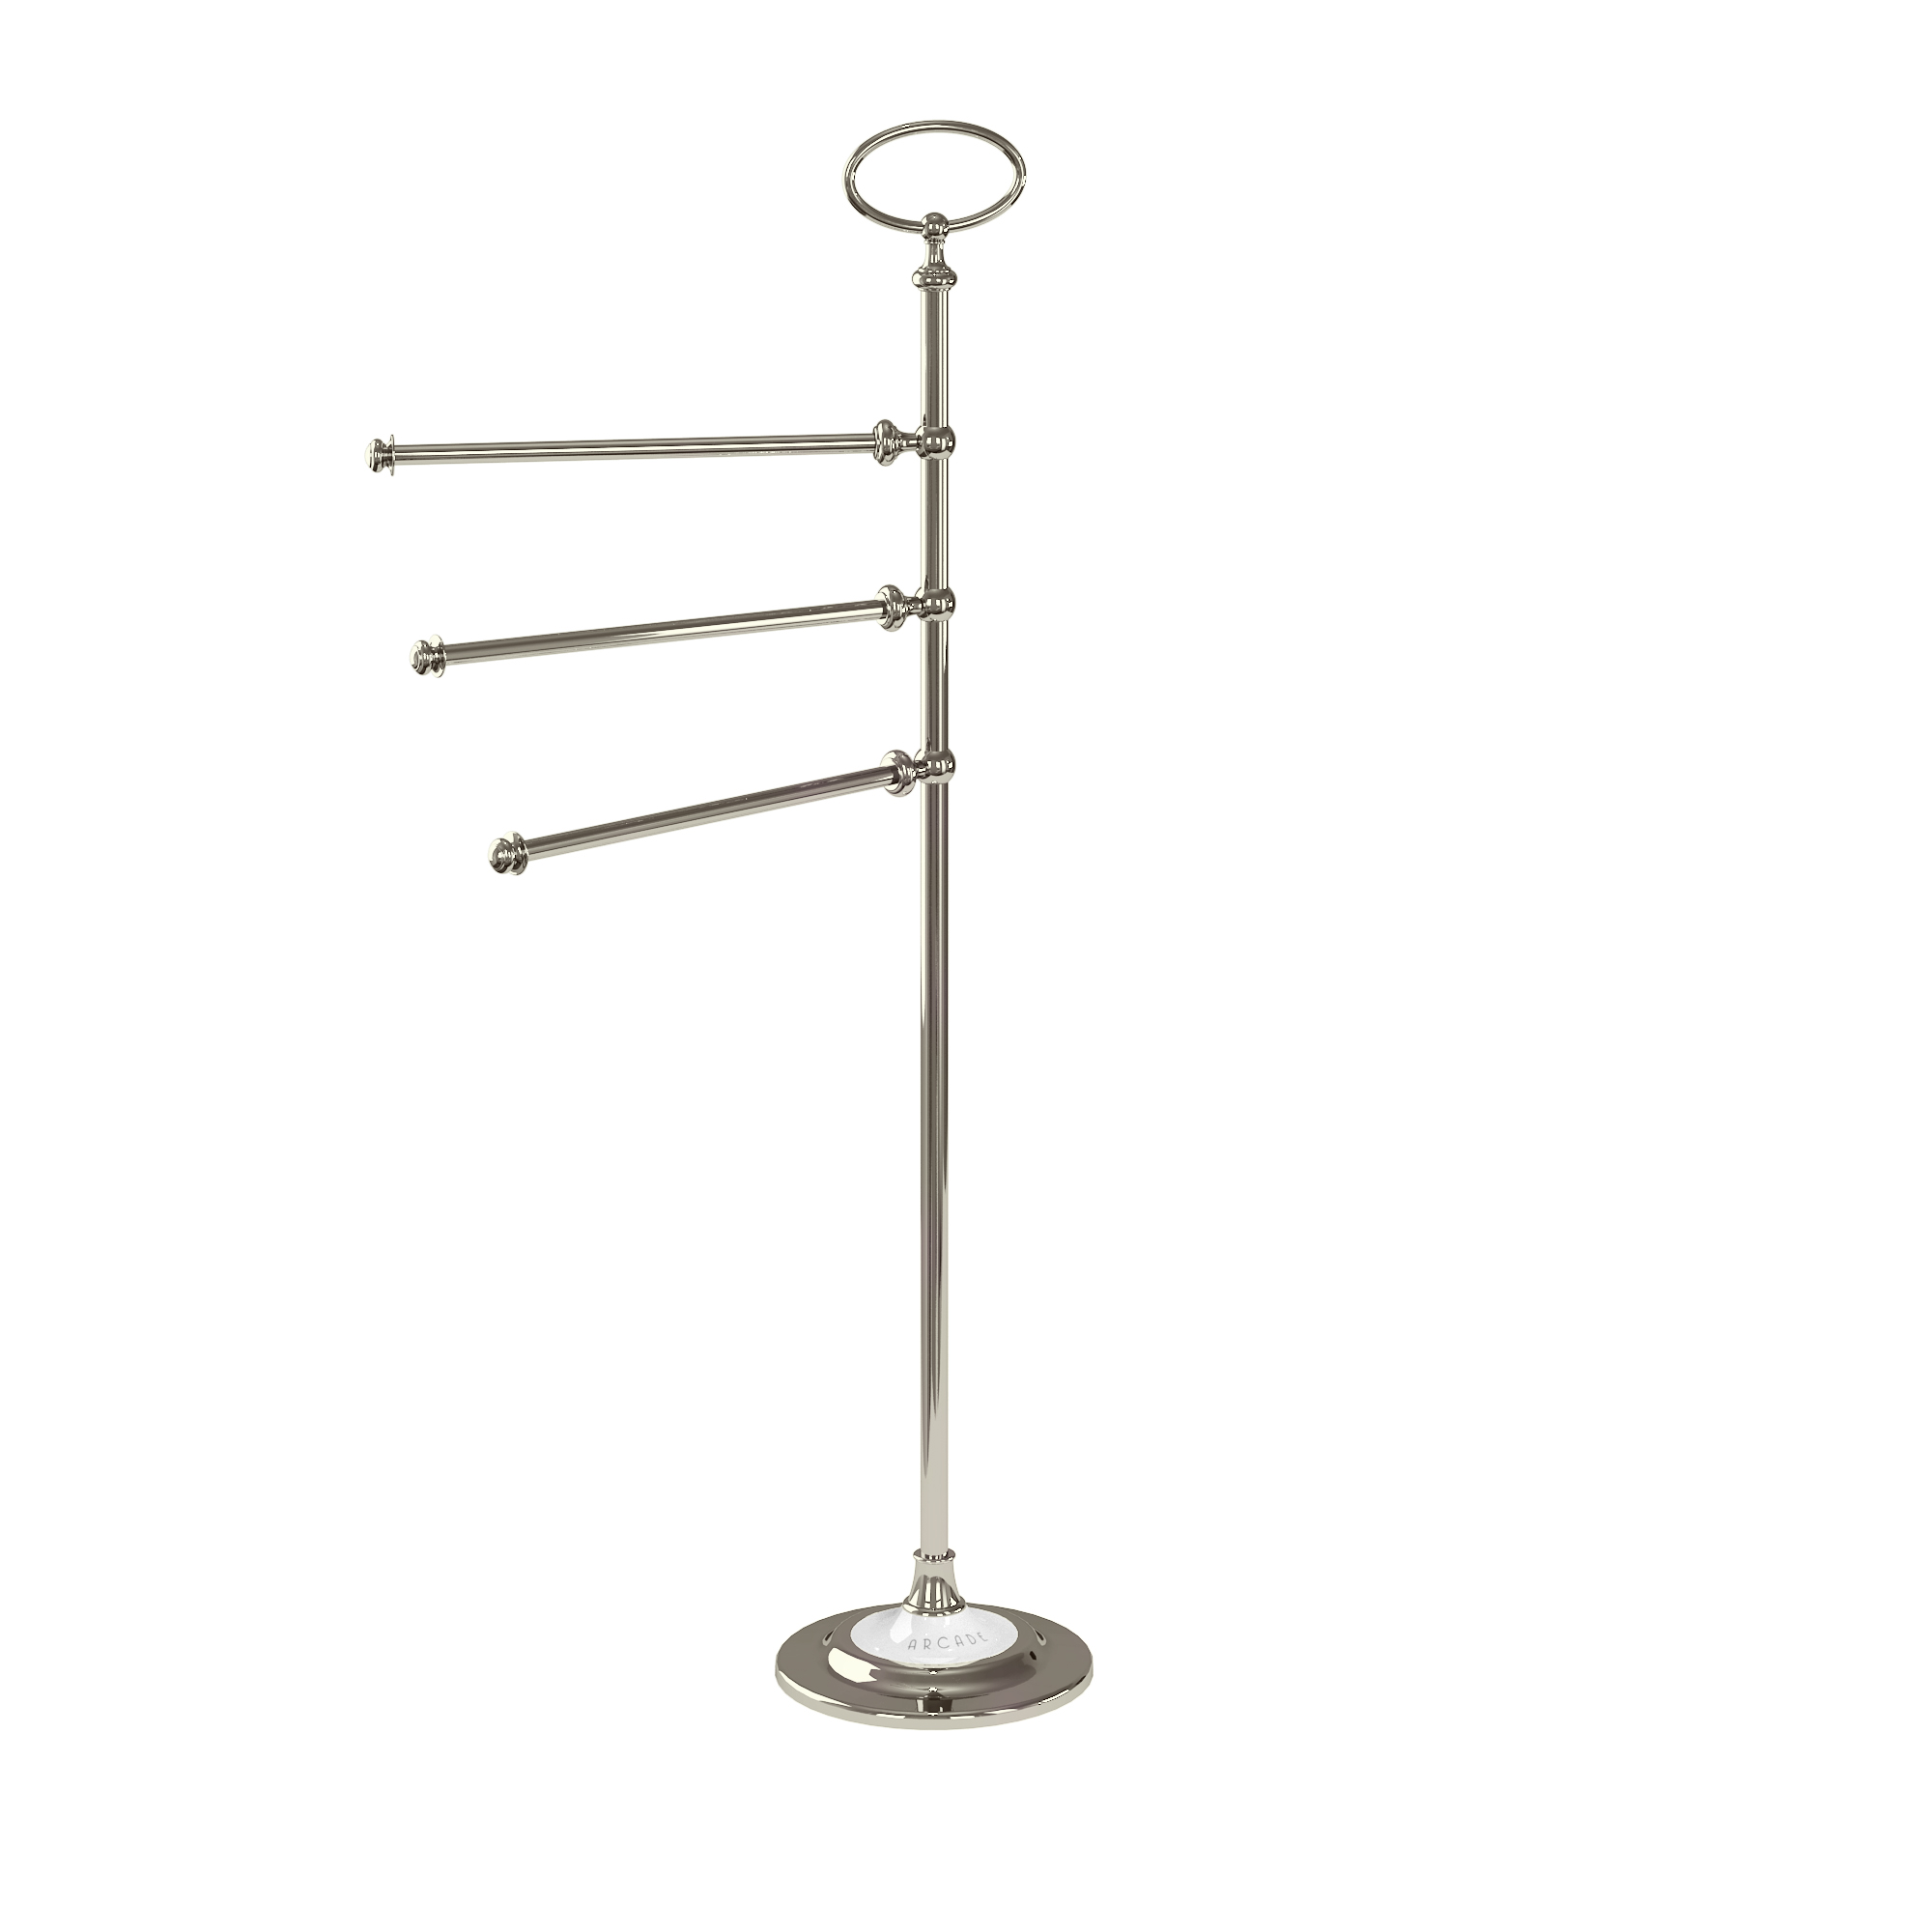 Arcade free-standing triple towel rail stand